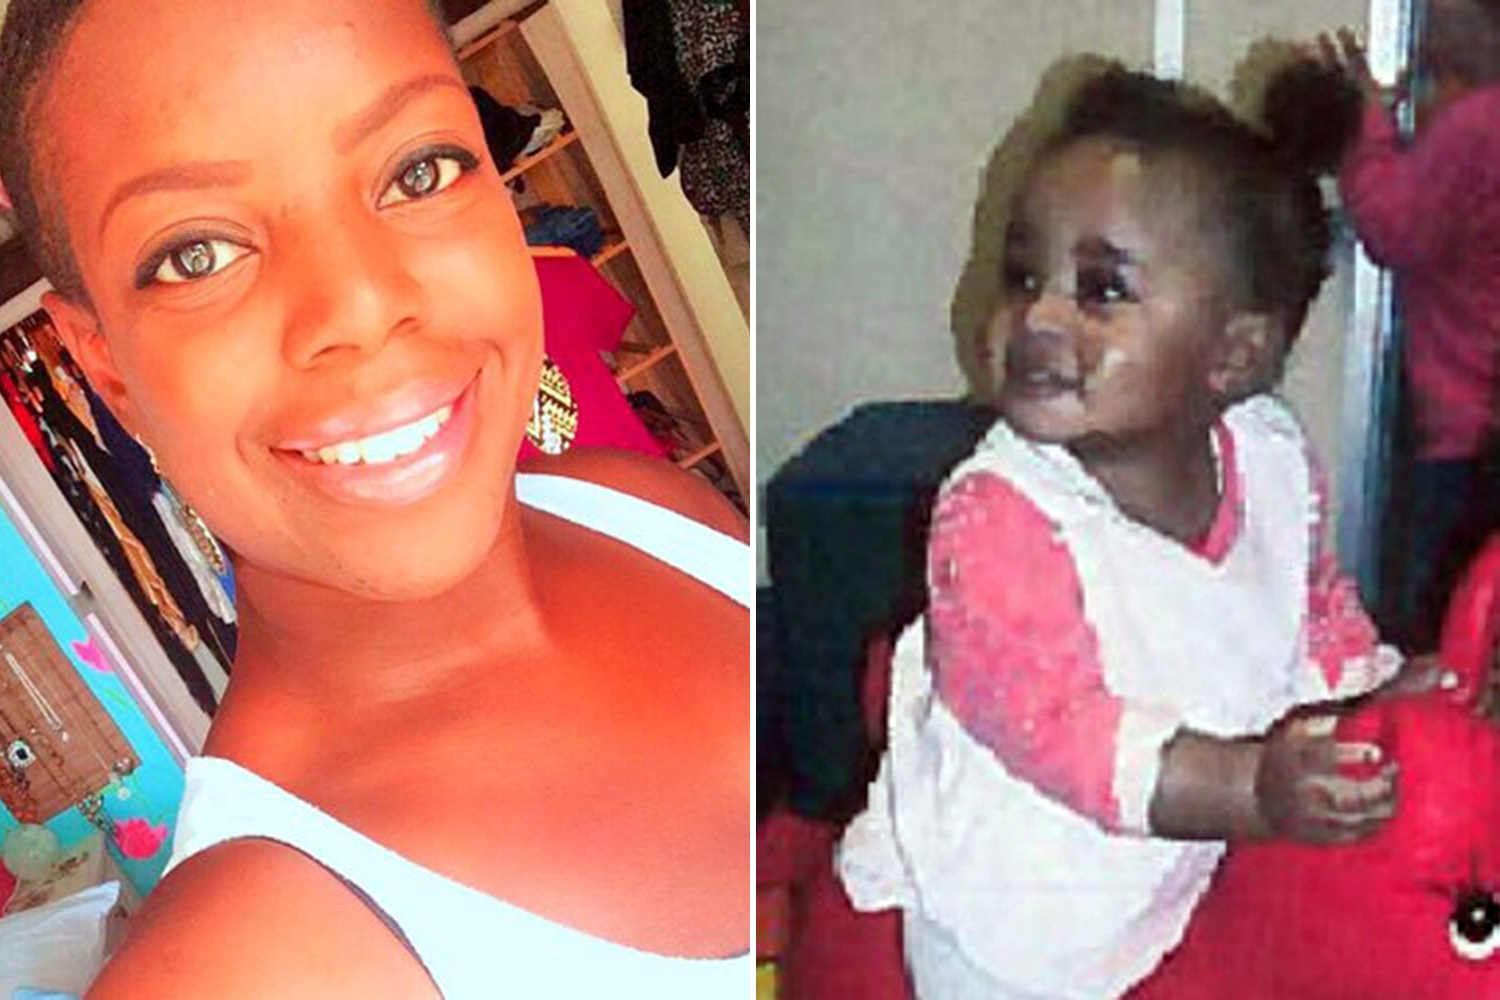 fOSTER MUM ACCUSED OF KILLING TOT BY BATTERING HER MORE THAN 90 TIMES